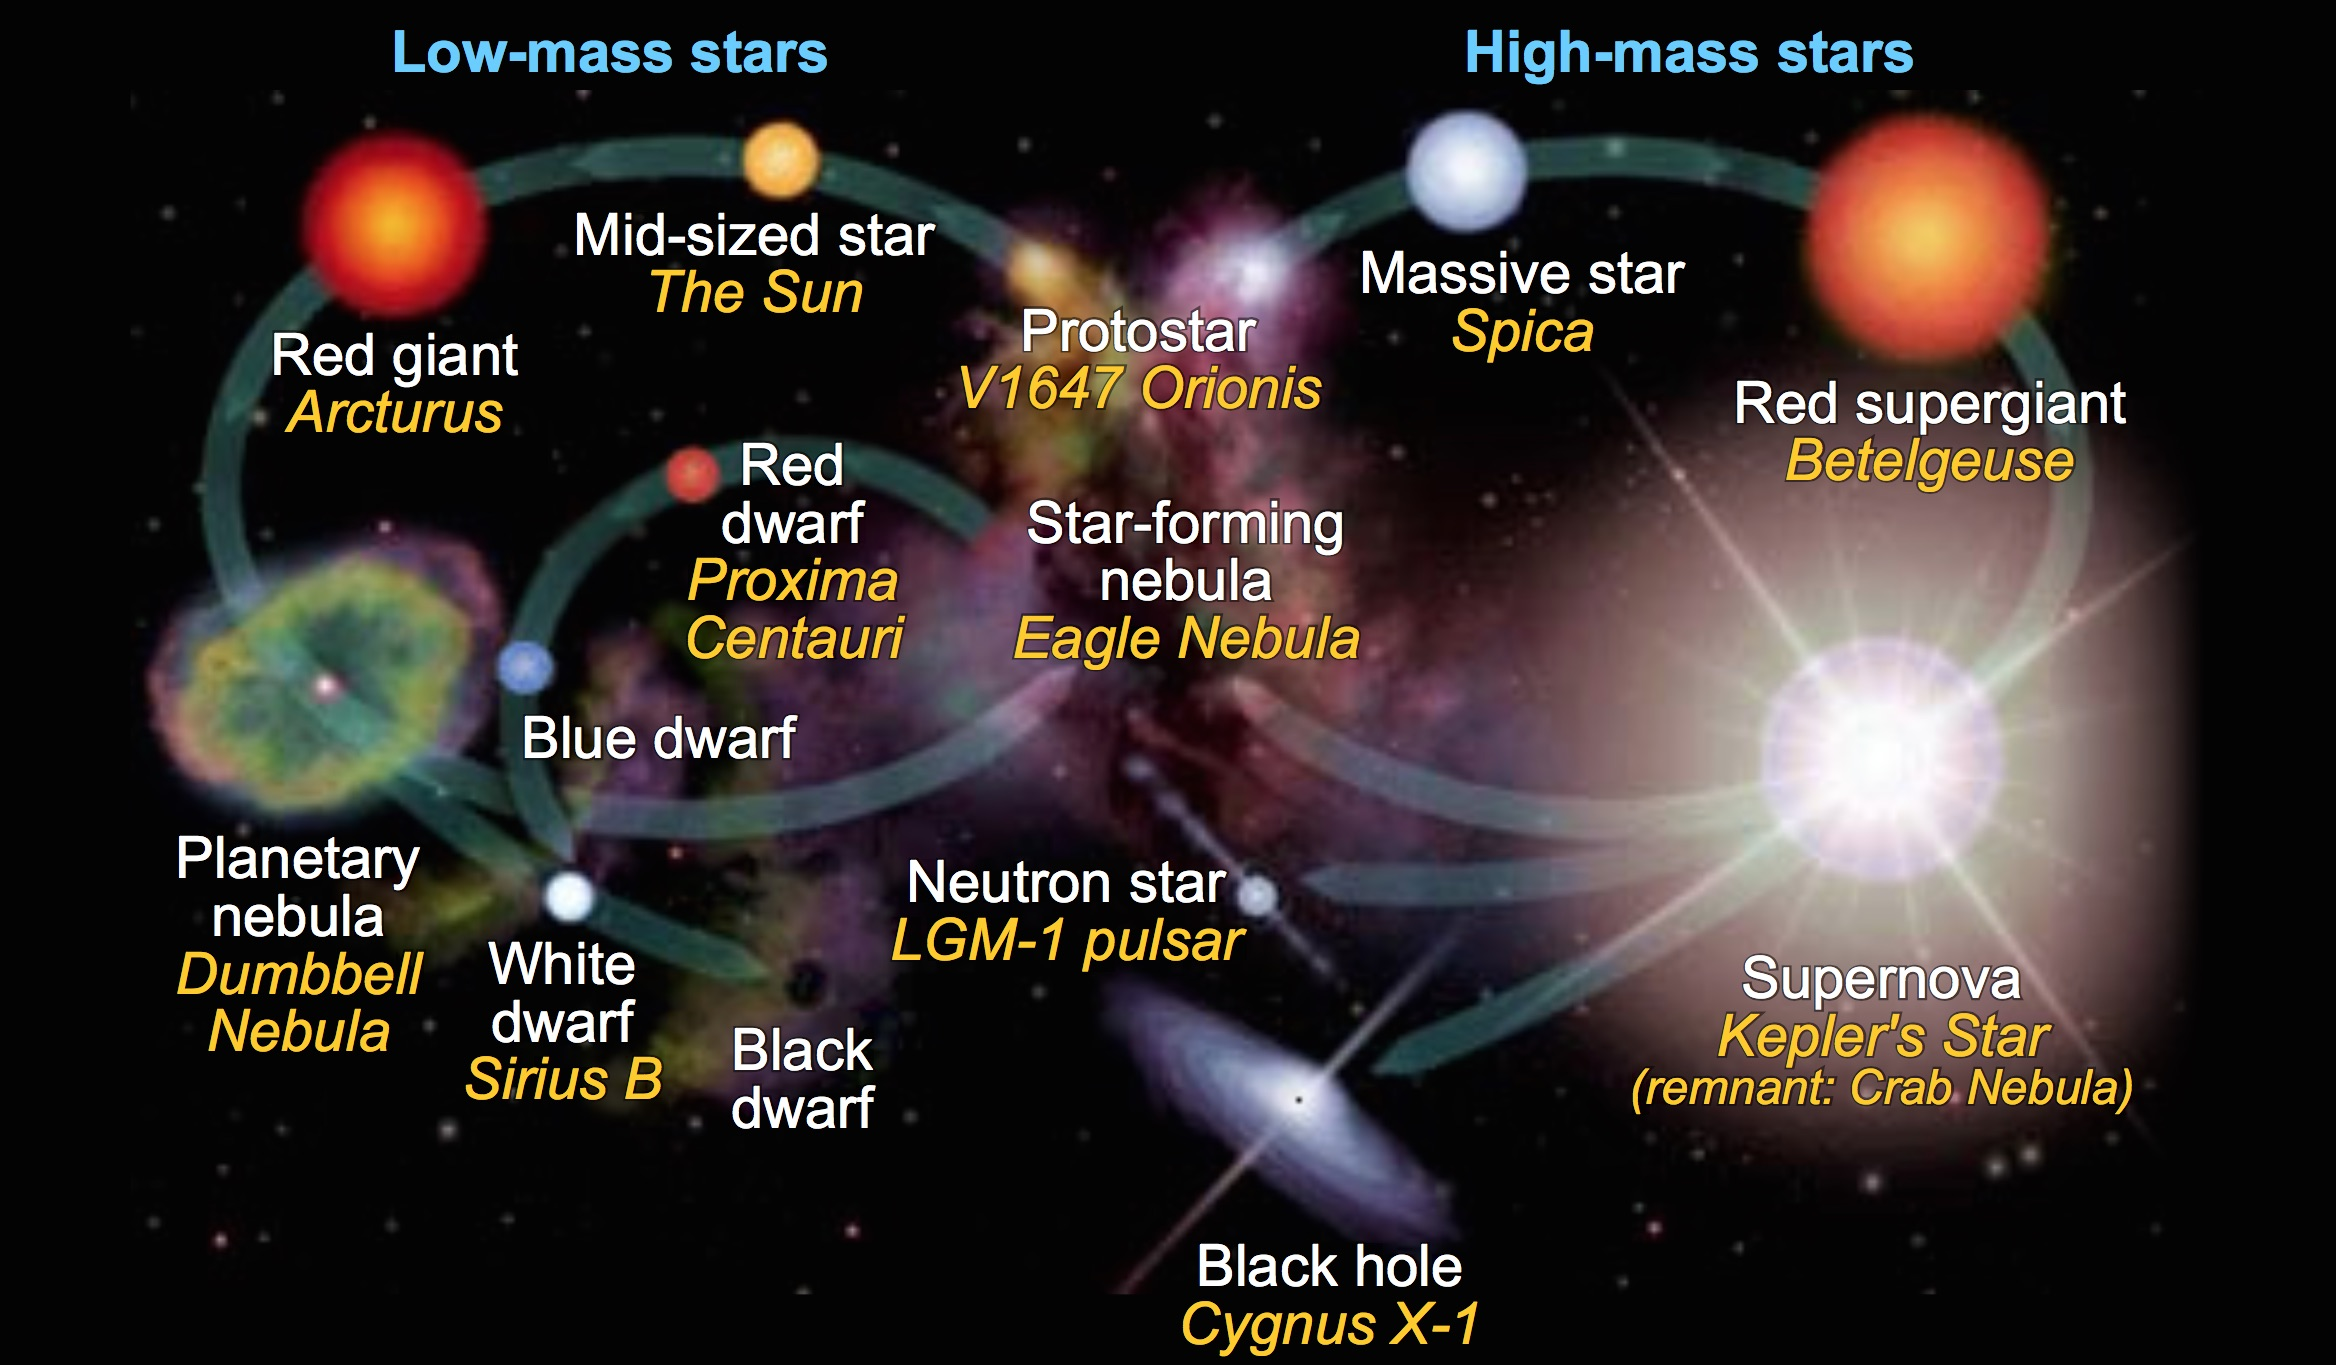 diagram of a low mass star life cycle husqvarna 455 rancher parts big bang theory science learning hub article questions